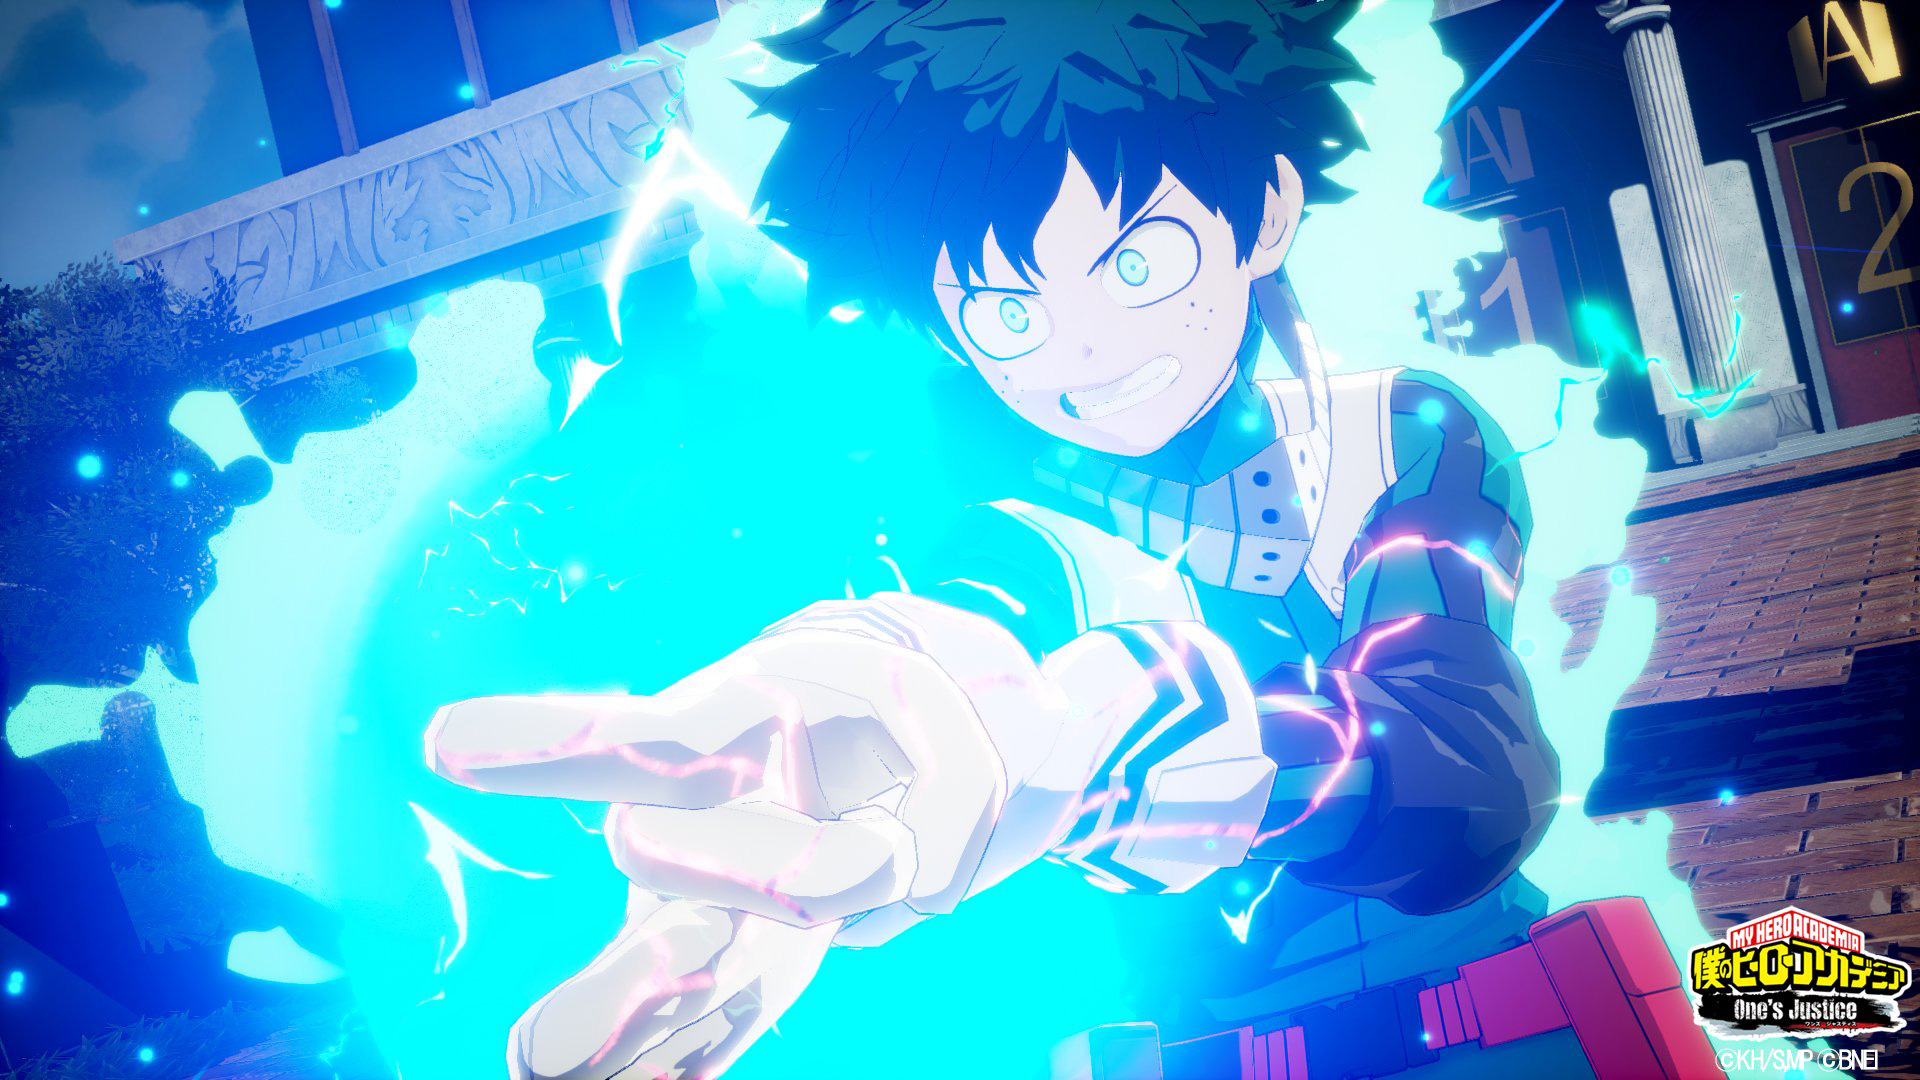 Boku-no-Hero-Academia-Ones-Justice-Screenshot-08